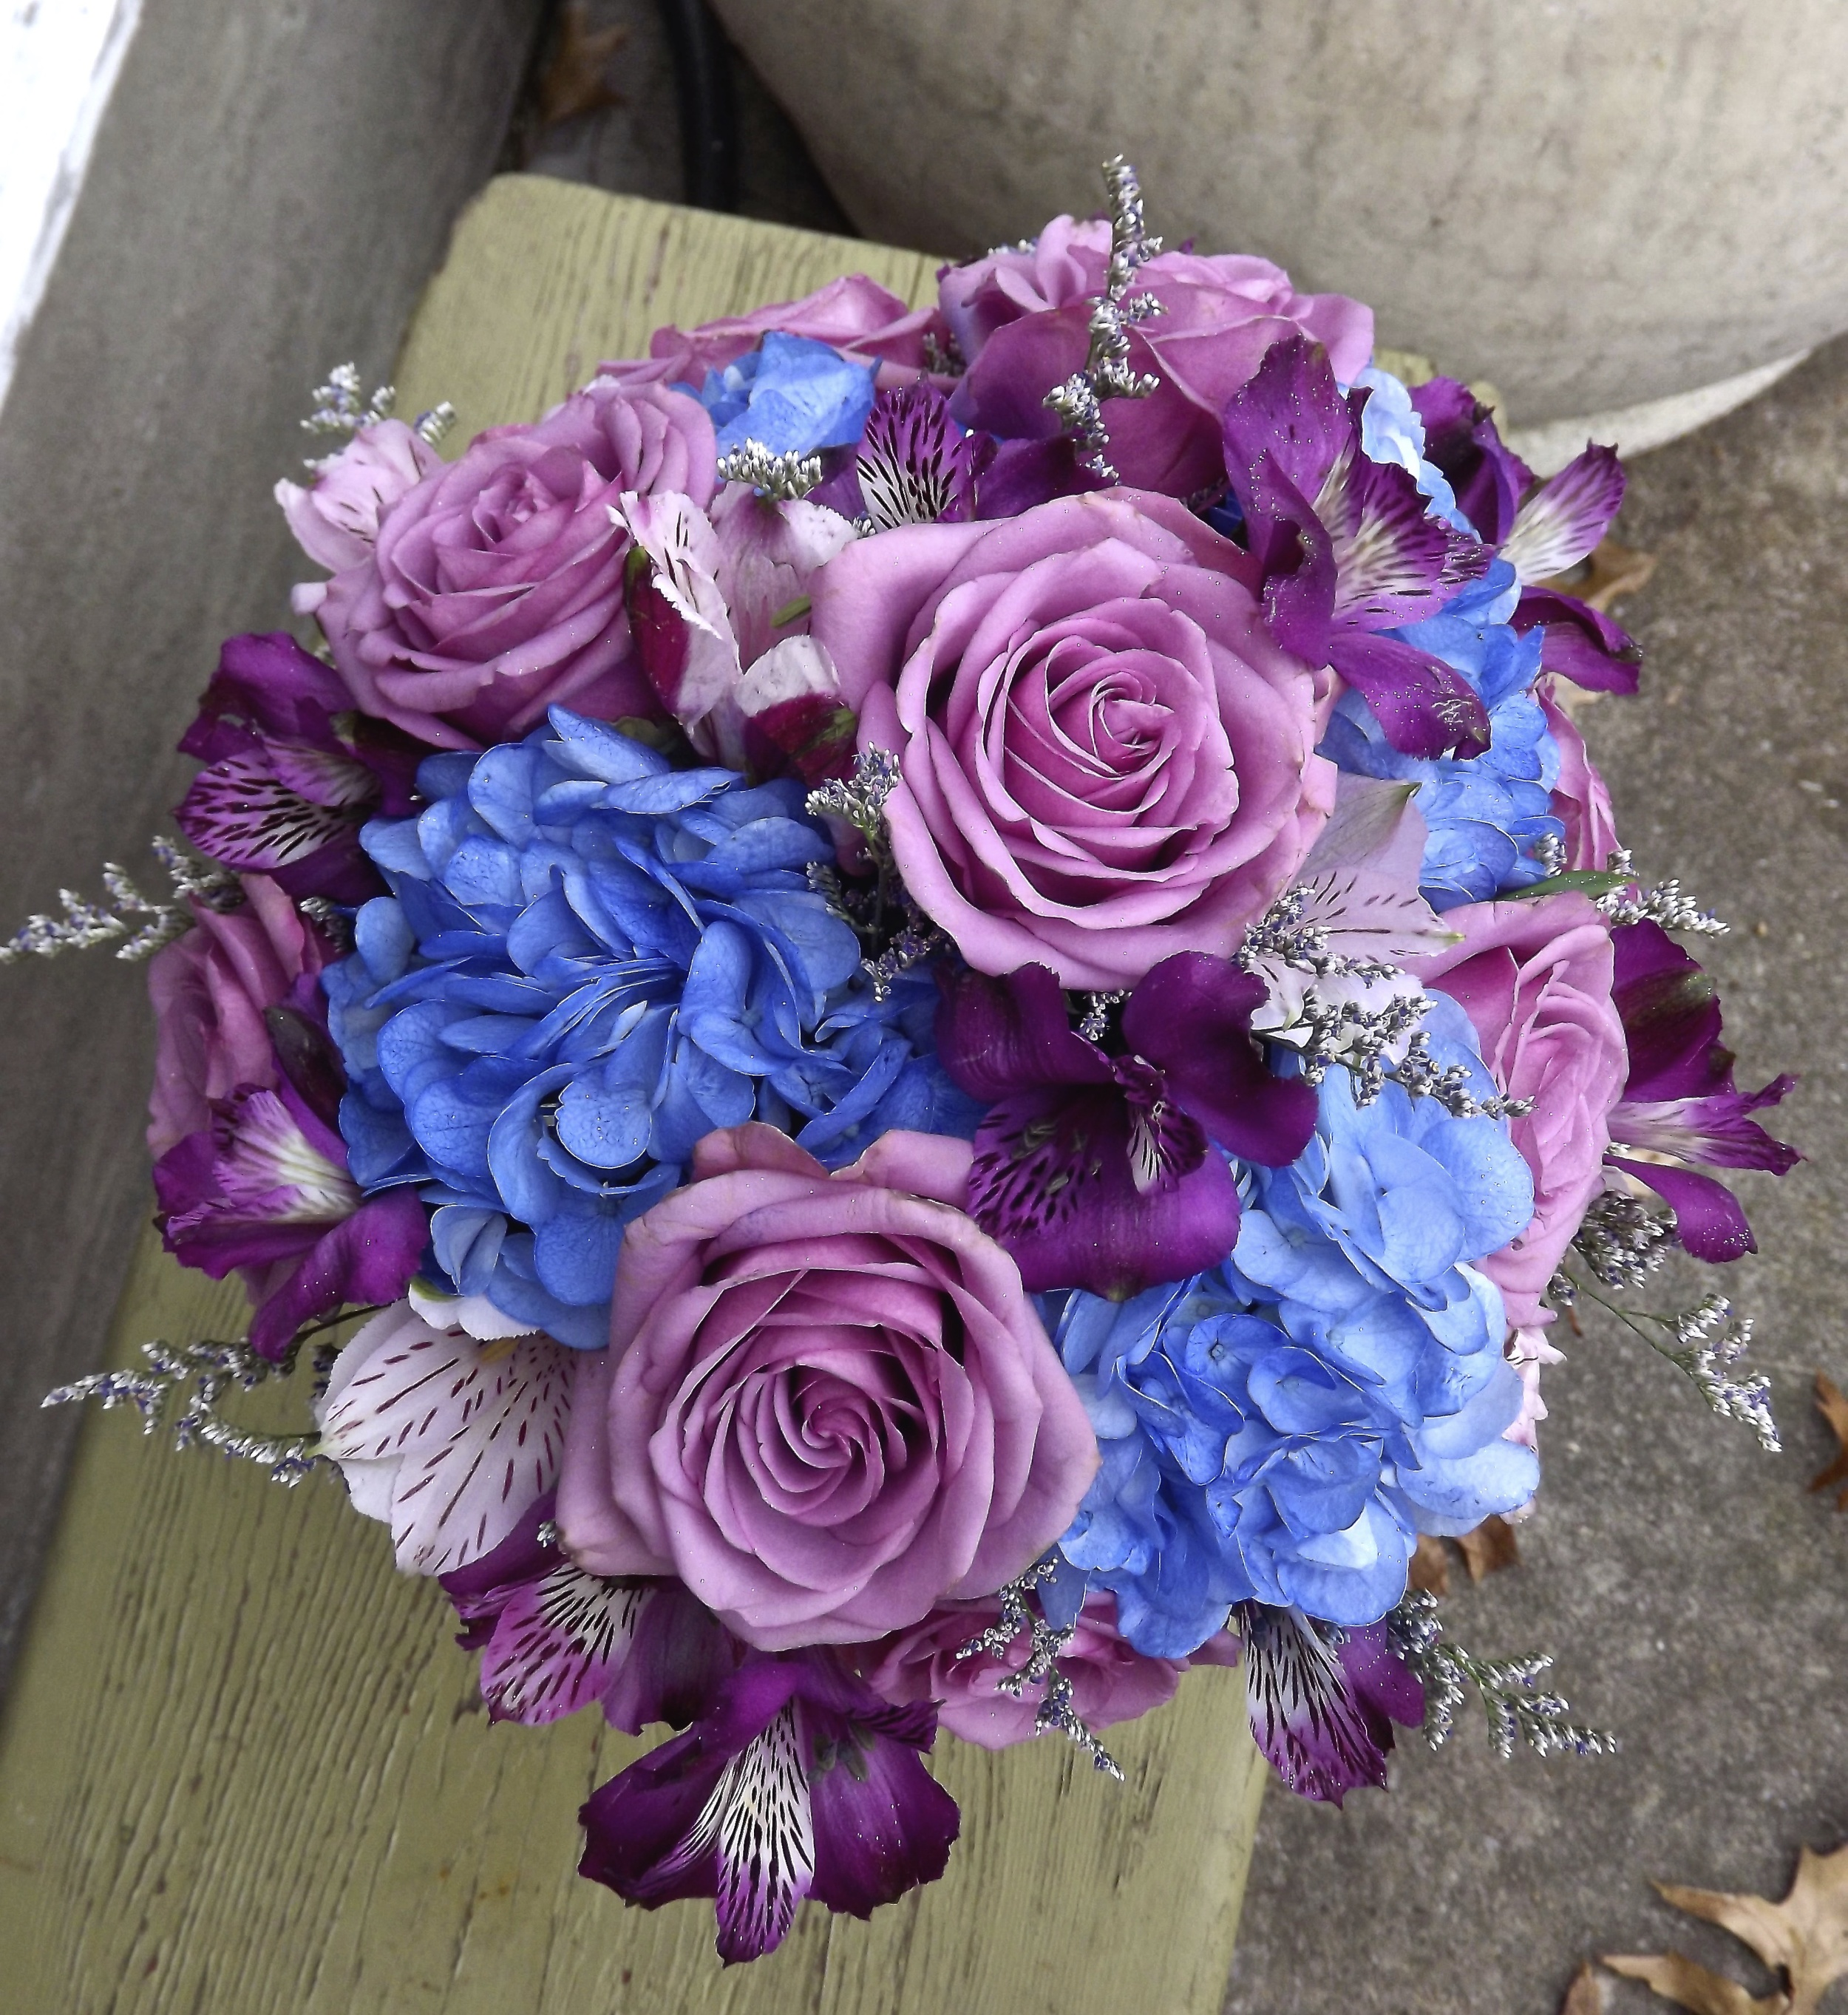 Blue hydrangea and purple roses and alstroemeria